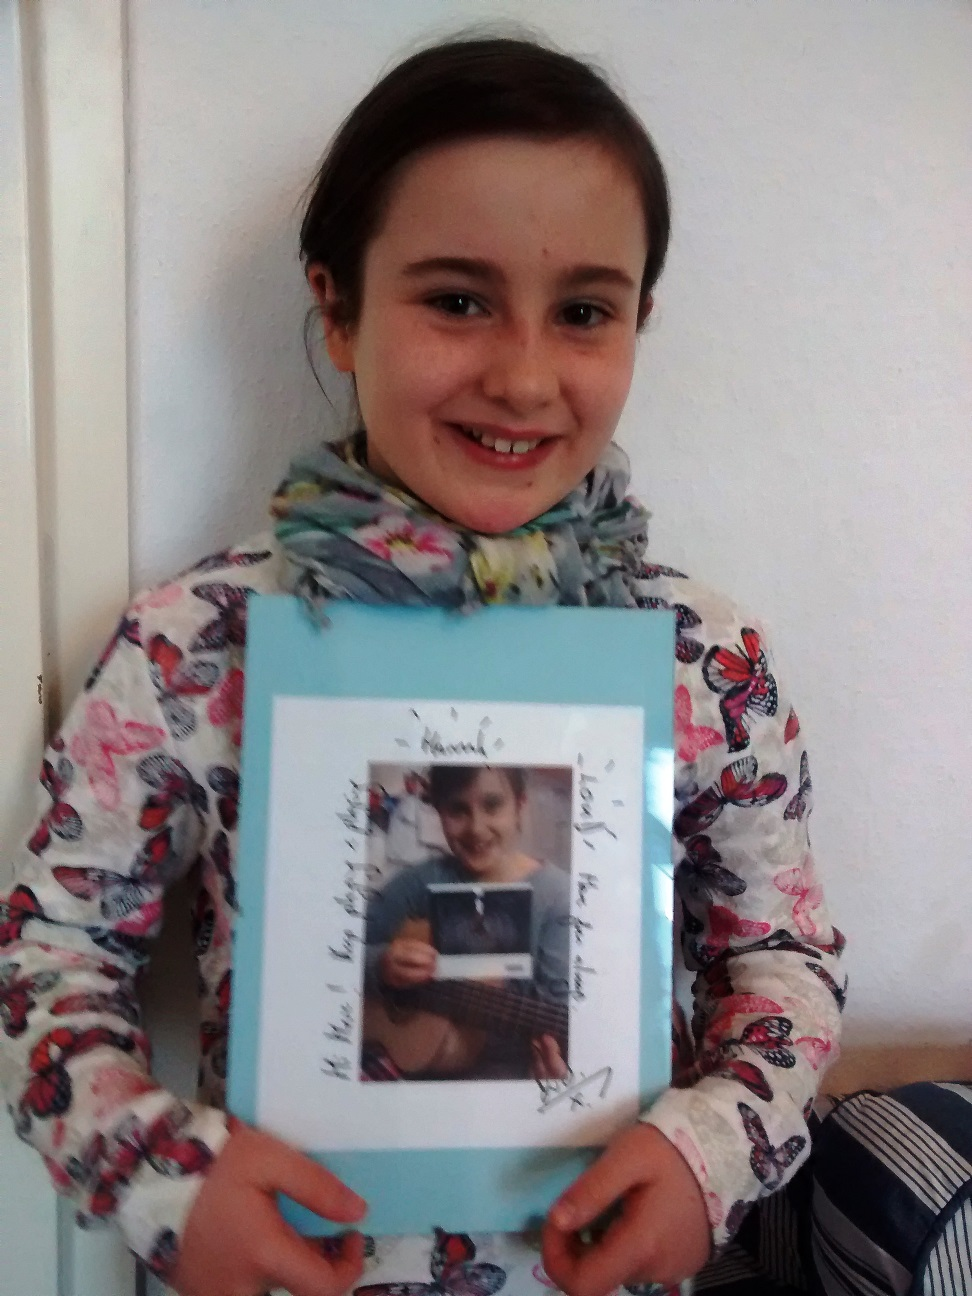 Hannah with her signed photo - proud & happy!